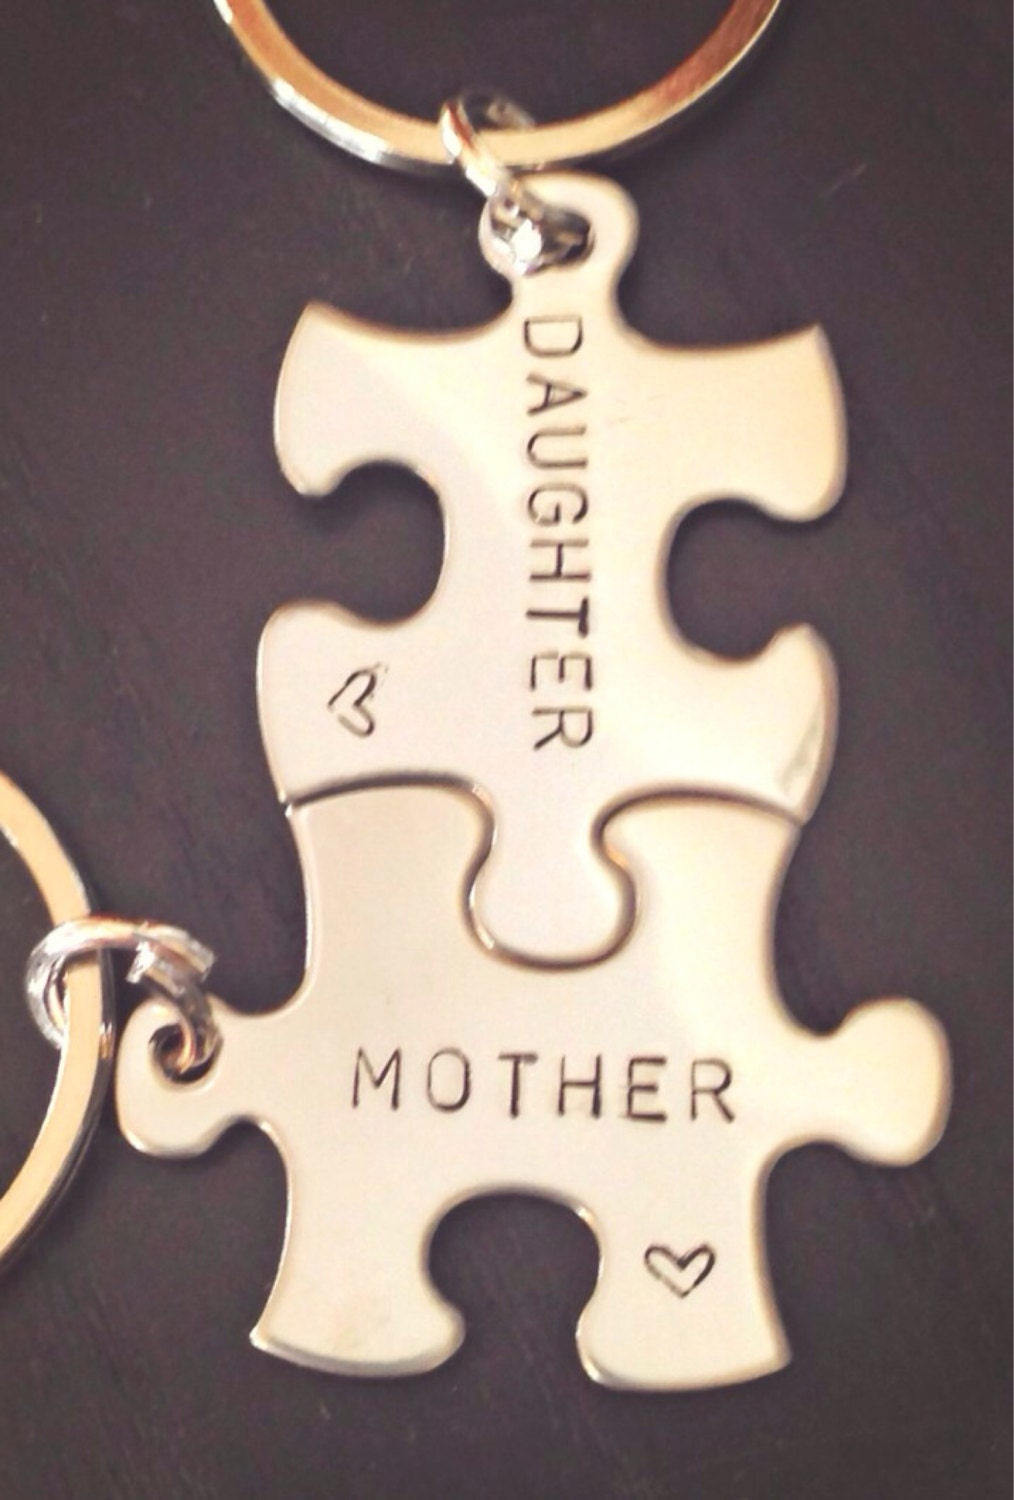 Mother Daughter Christmas Gifts Mother Daughter Gifts